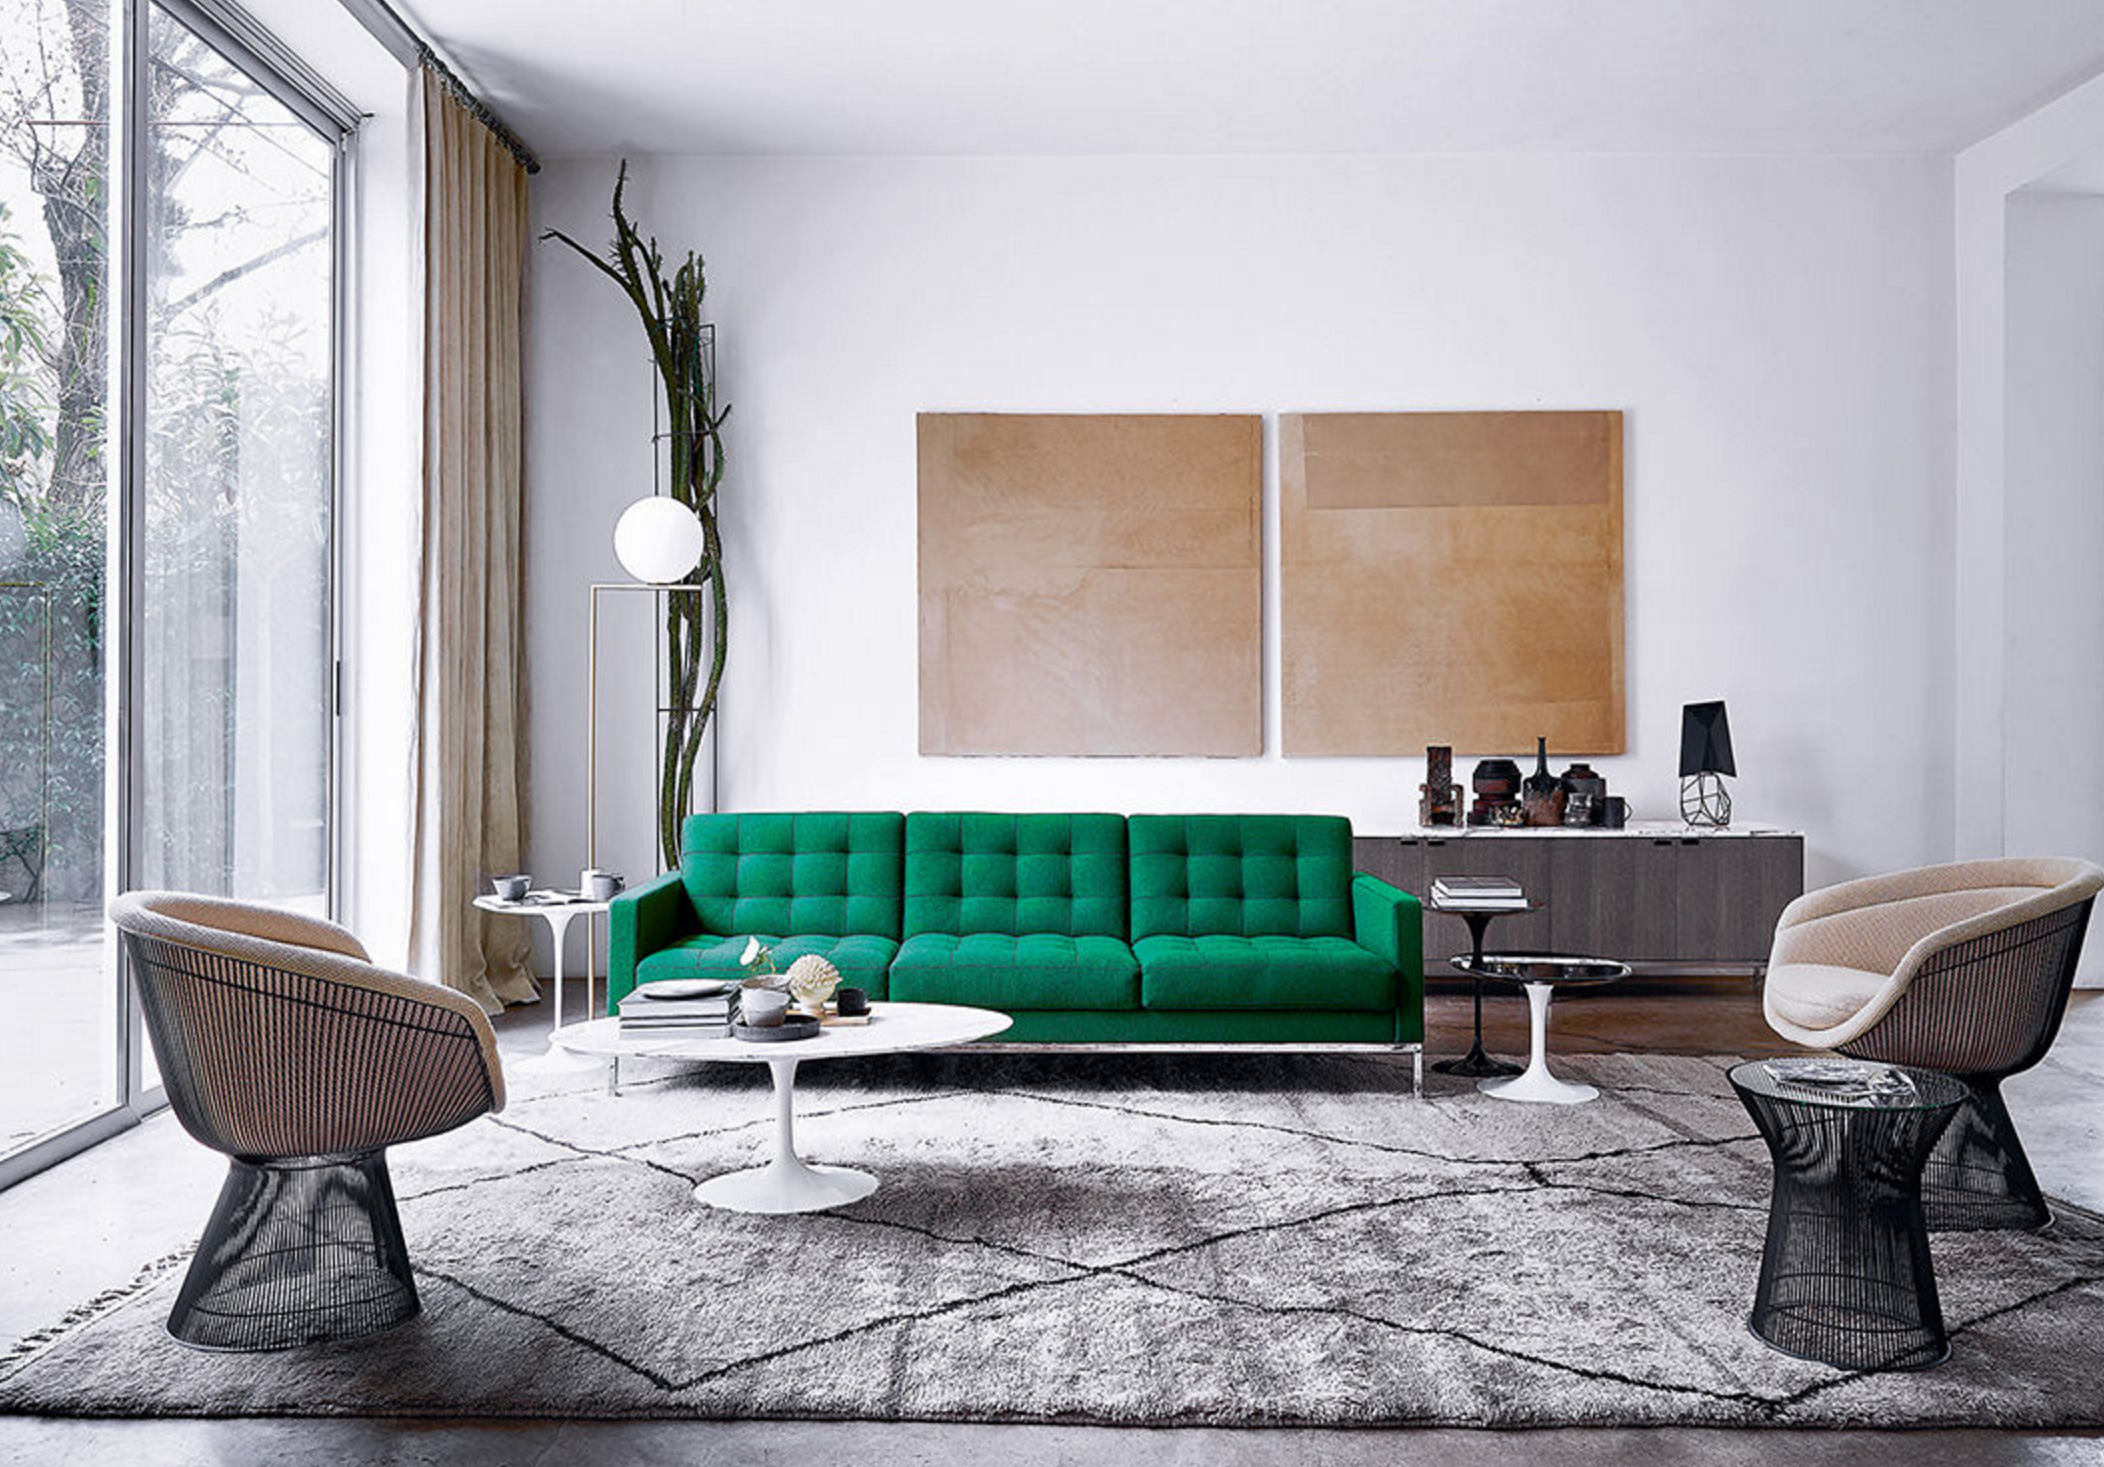 Wundervoll An Emerald Green Florence Knoll Sofa And A Pair Of Platner Lounge Chairs  Make For A Gorgeous Knoll Tableau.